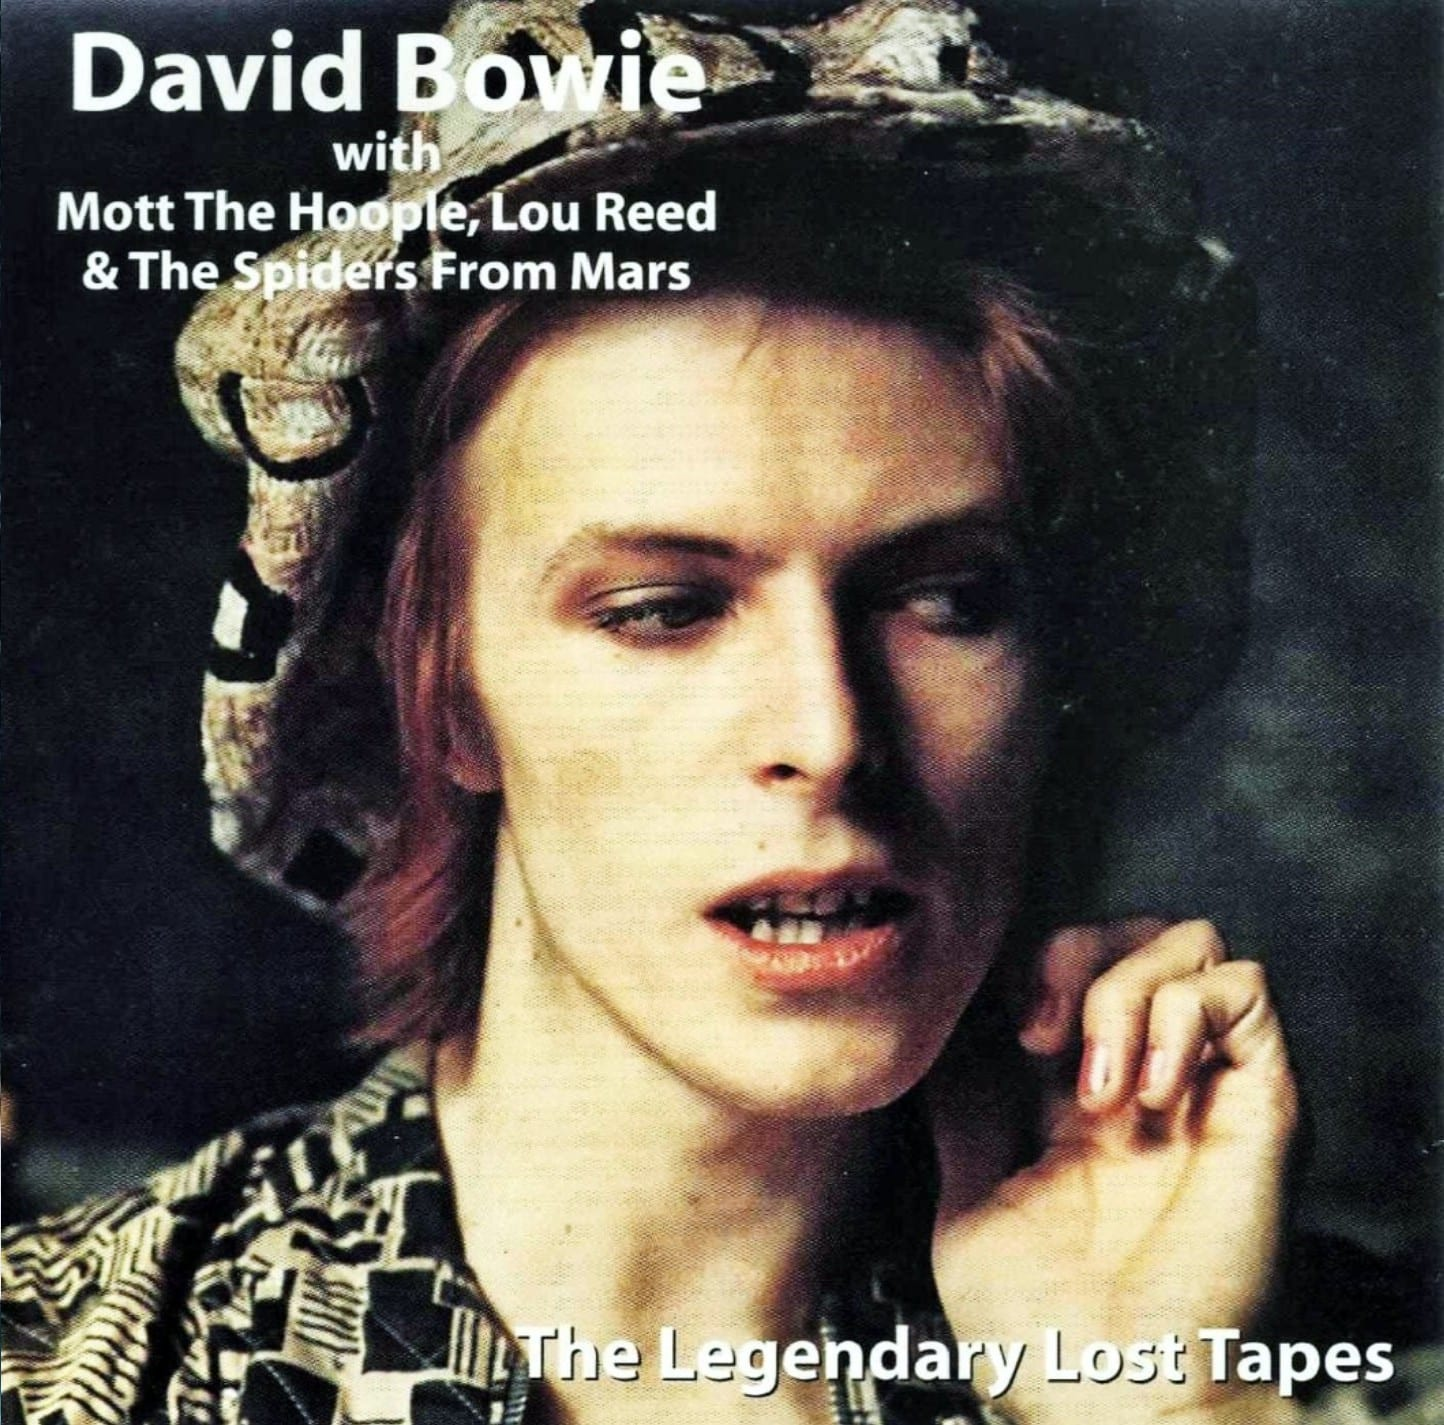 David Bowie - Legendary Lost Tapes (1973) CD 9